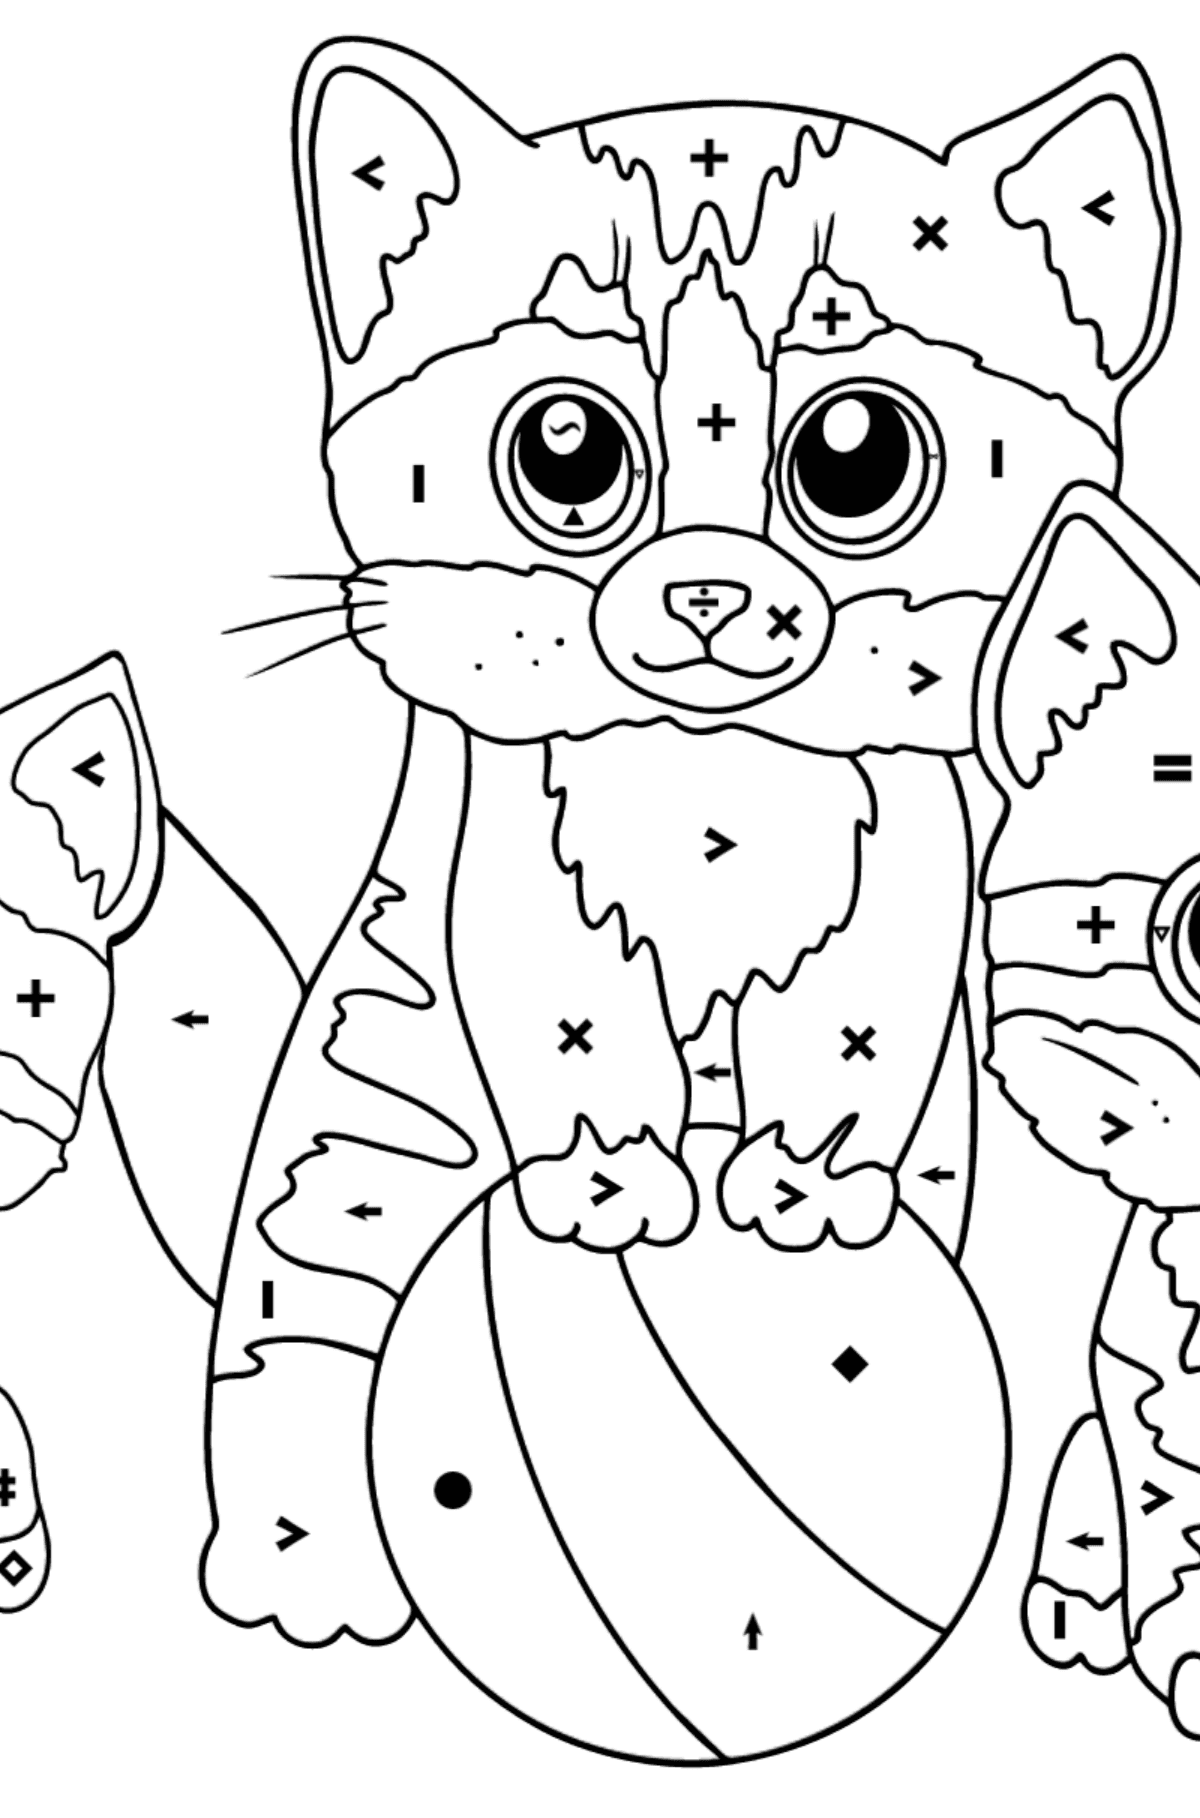 Coloring Page - Three Kittens are Playing Together with a Ball  - Coloring by Symbols for Kids